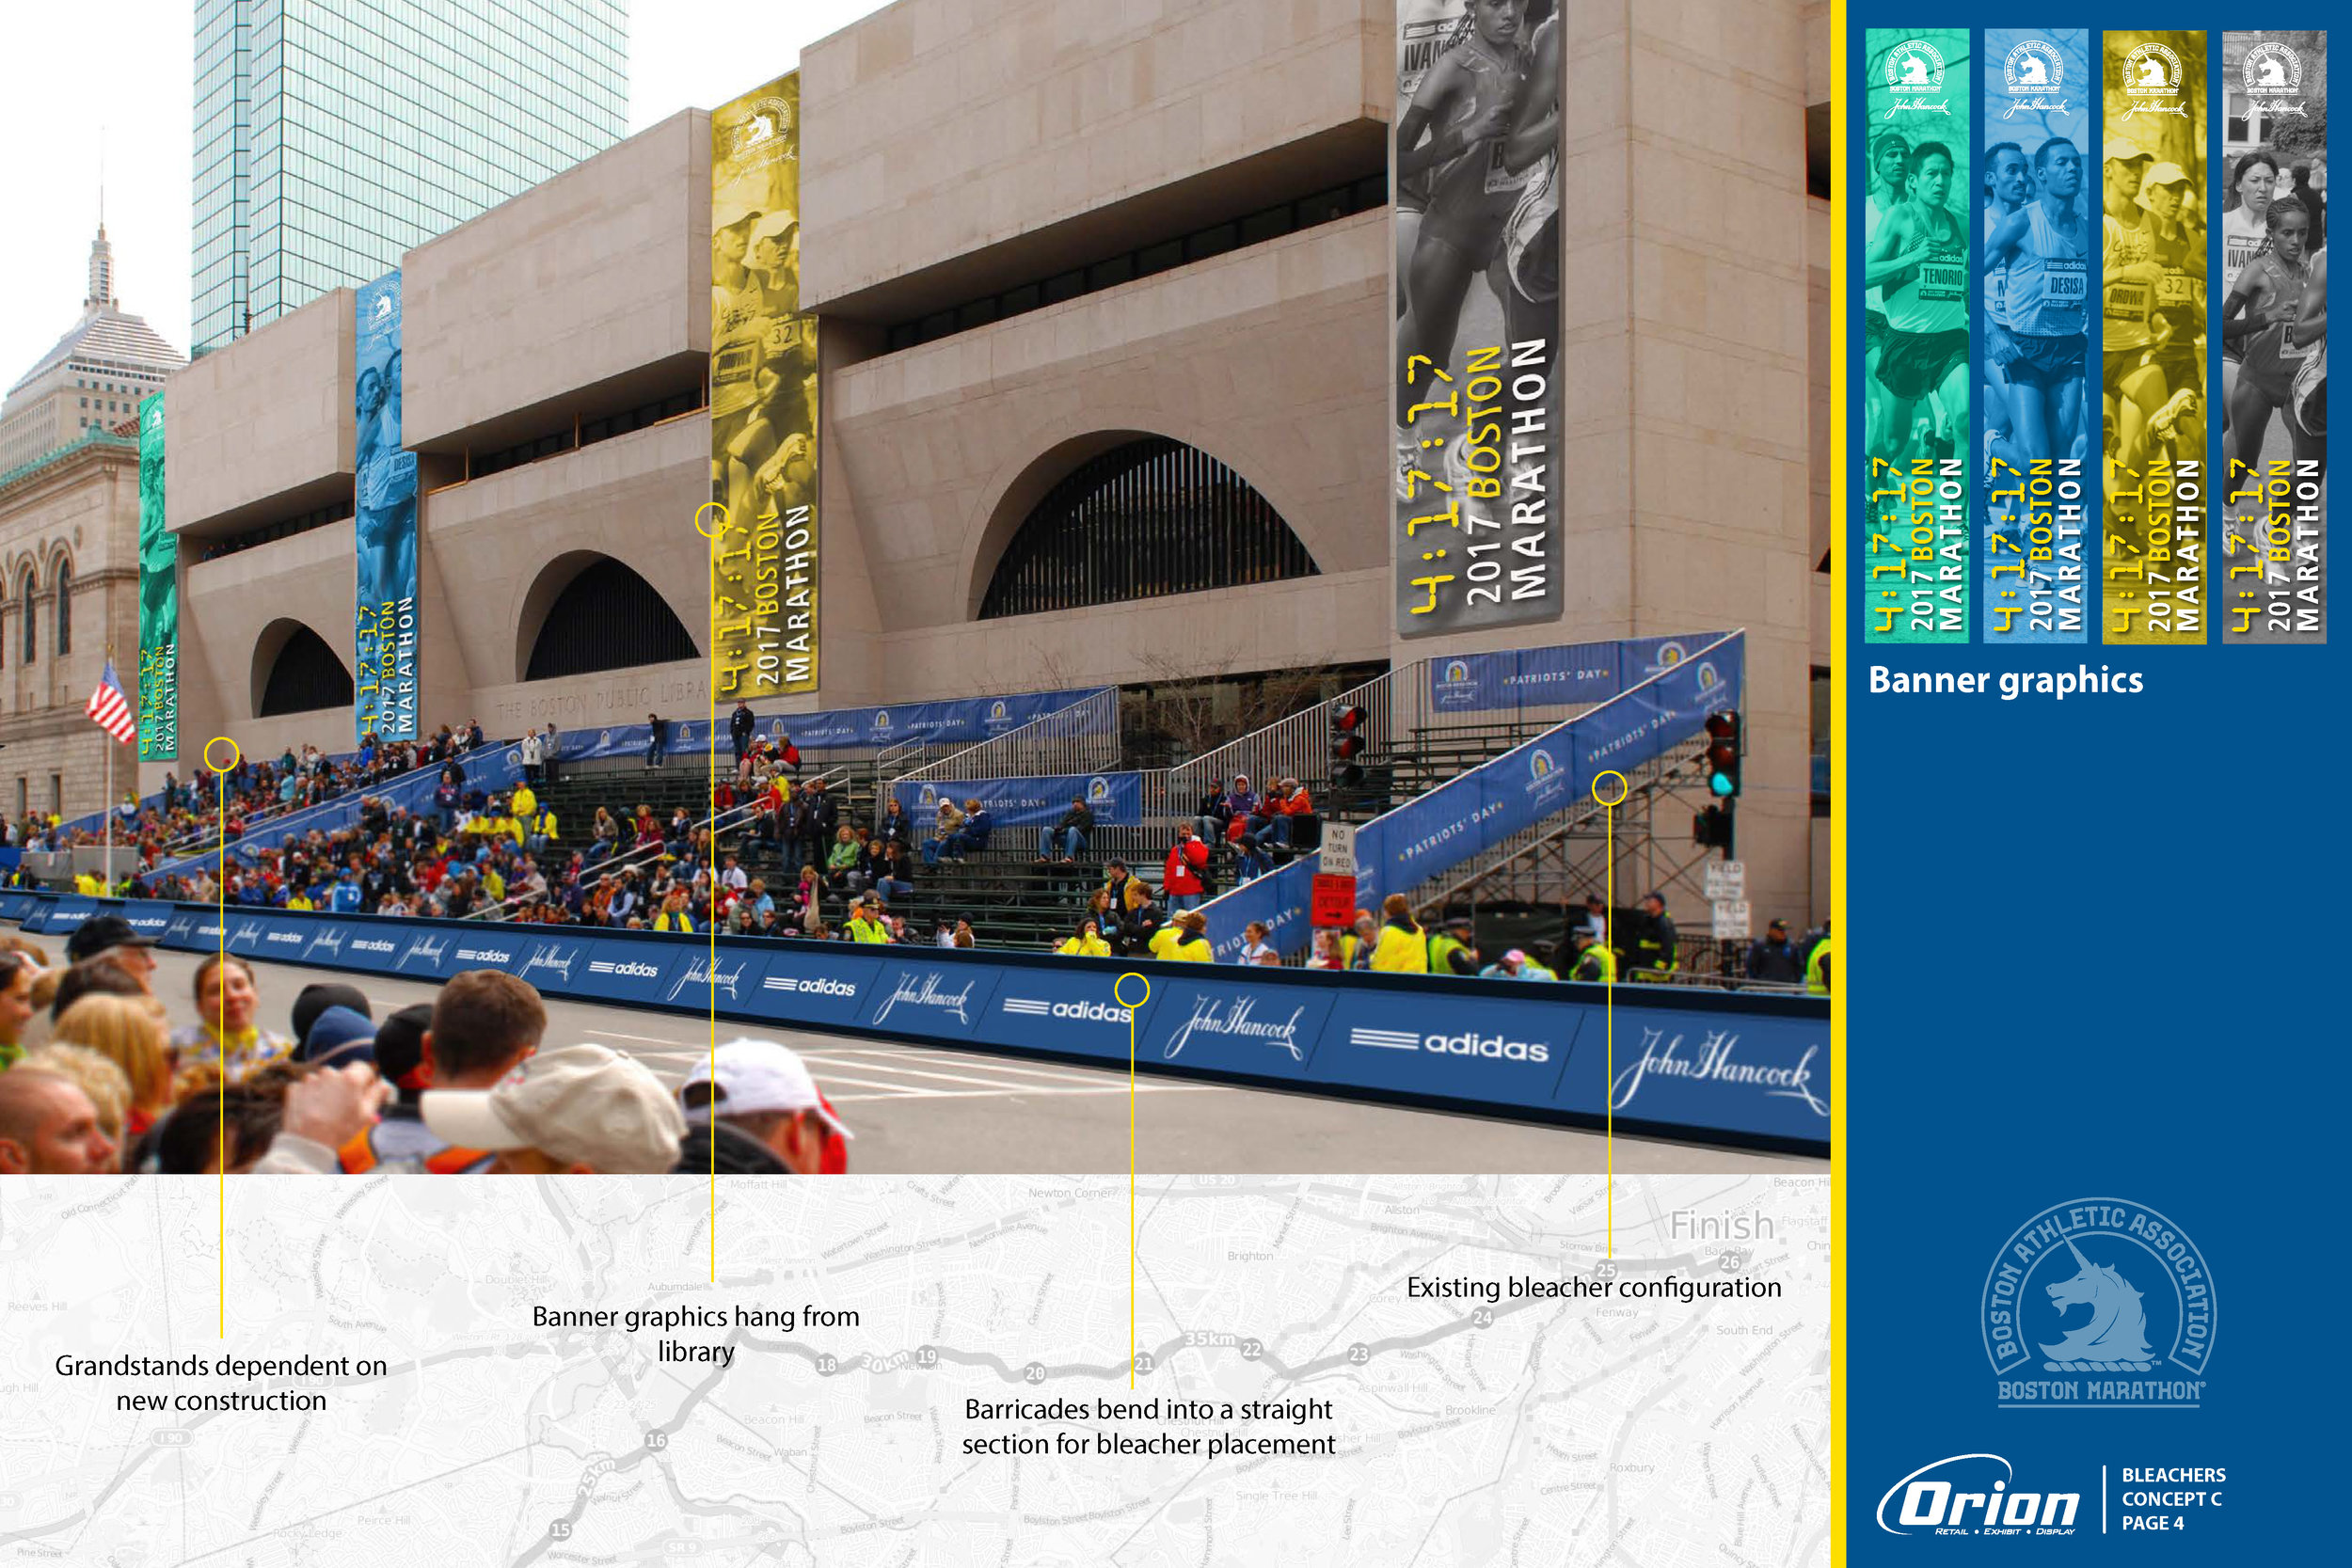 Pages from BostonMarathon%20Presentation_Concept%20C-LR_Page_4.jpg